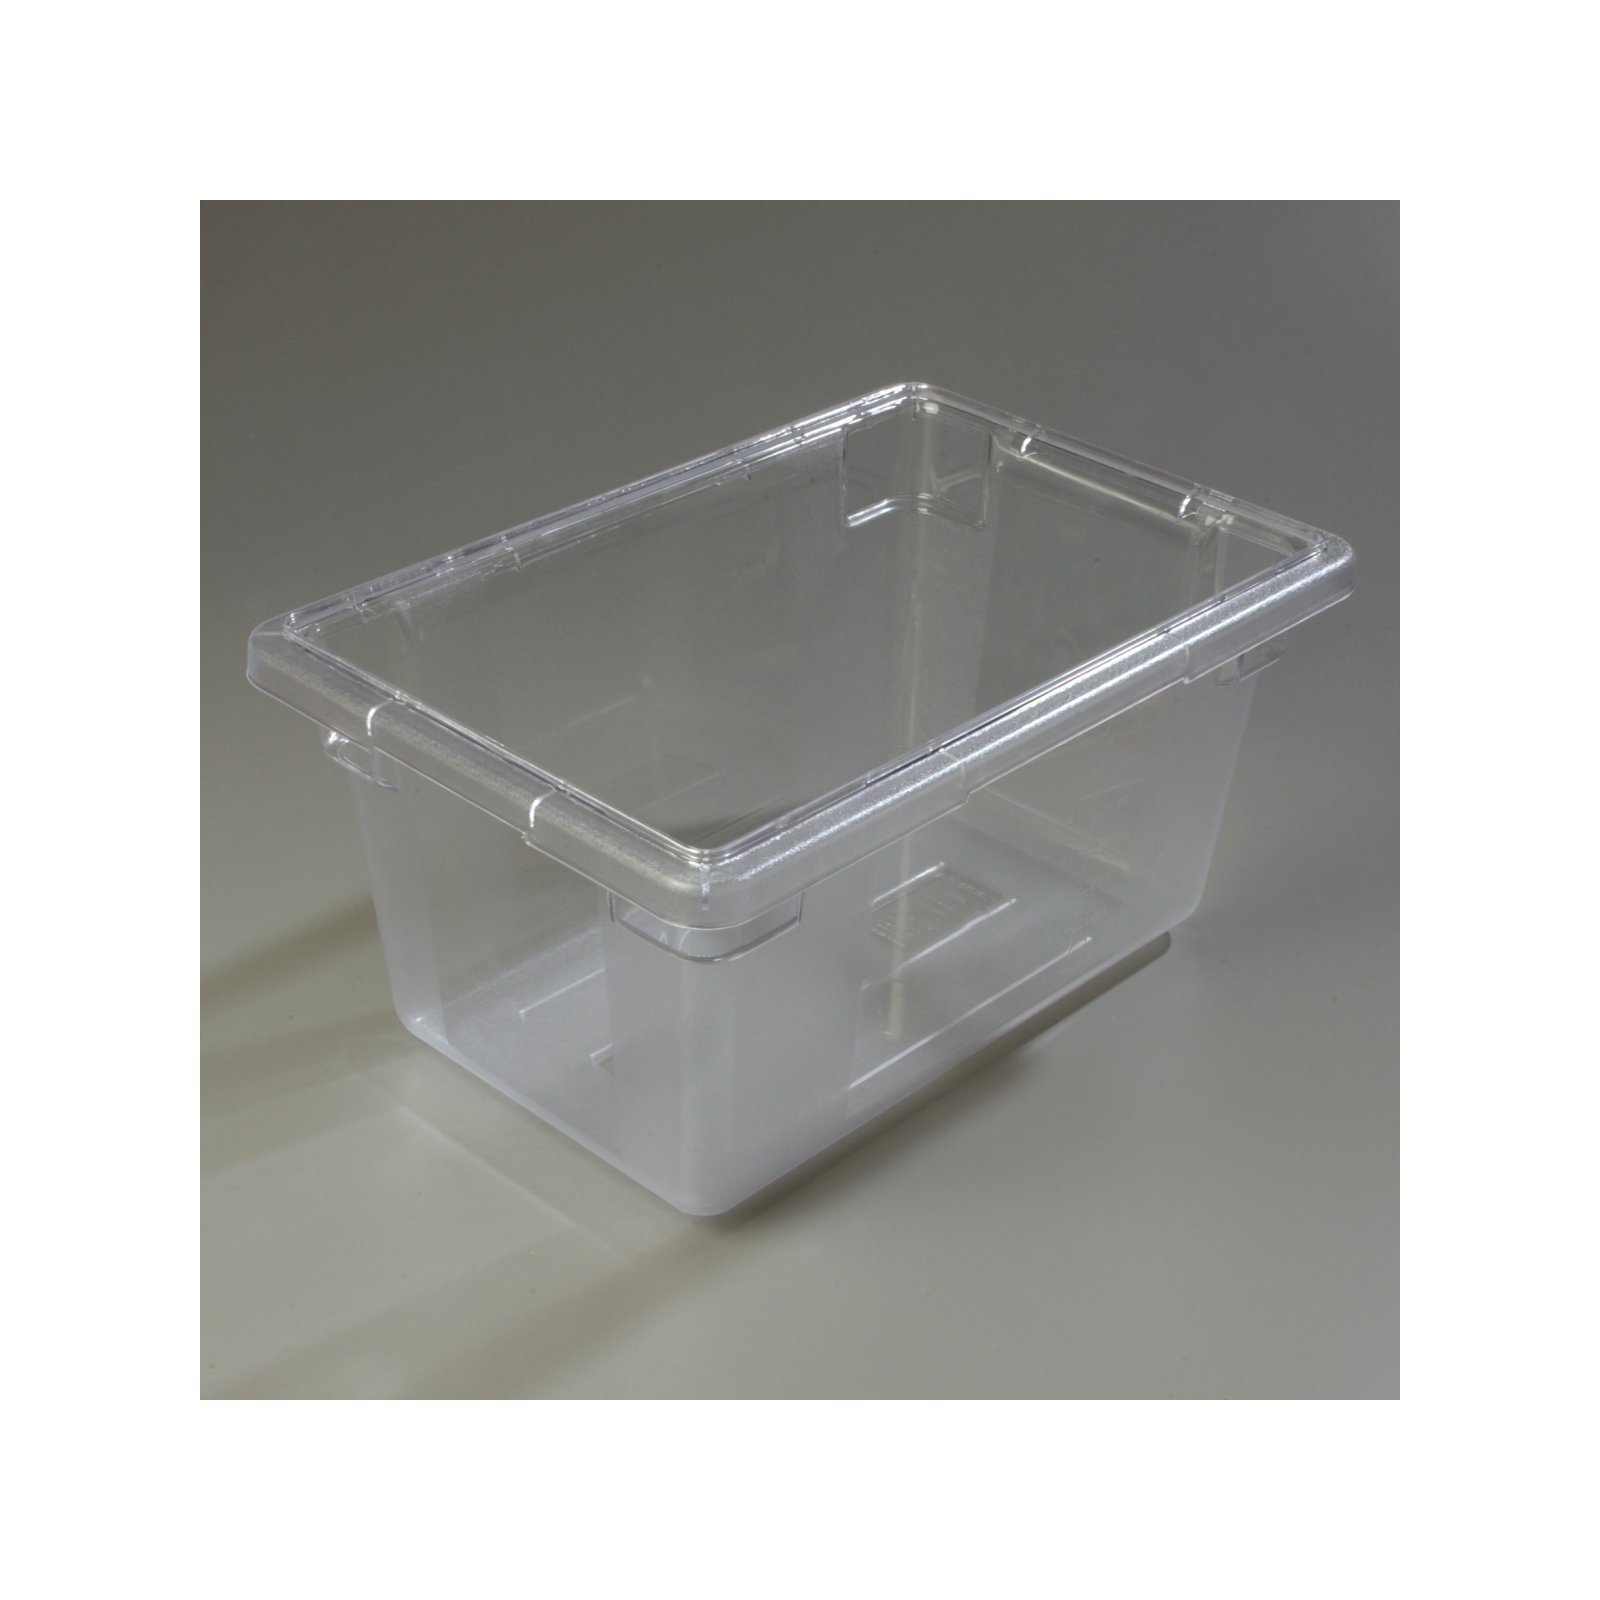 ... 1061207 - StorPlus™ Polycarbonate Food Box Storage Container 5 Gallon 18  x 12  sc 1 st  Carlisle FoodService Products & 1061207 - StorPlus™ Polycarbonate Food Box Storage Container 5 ...